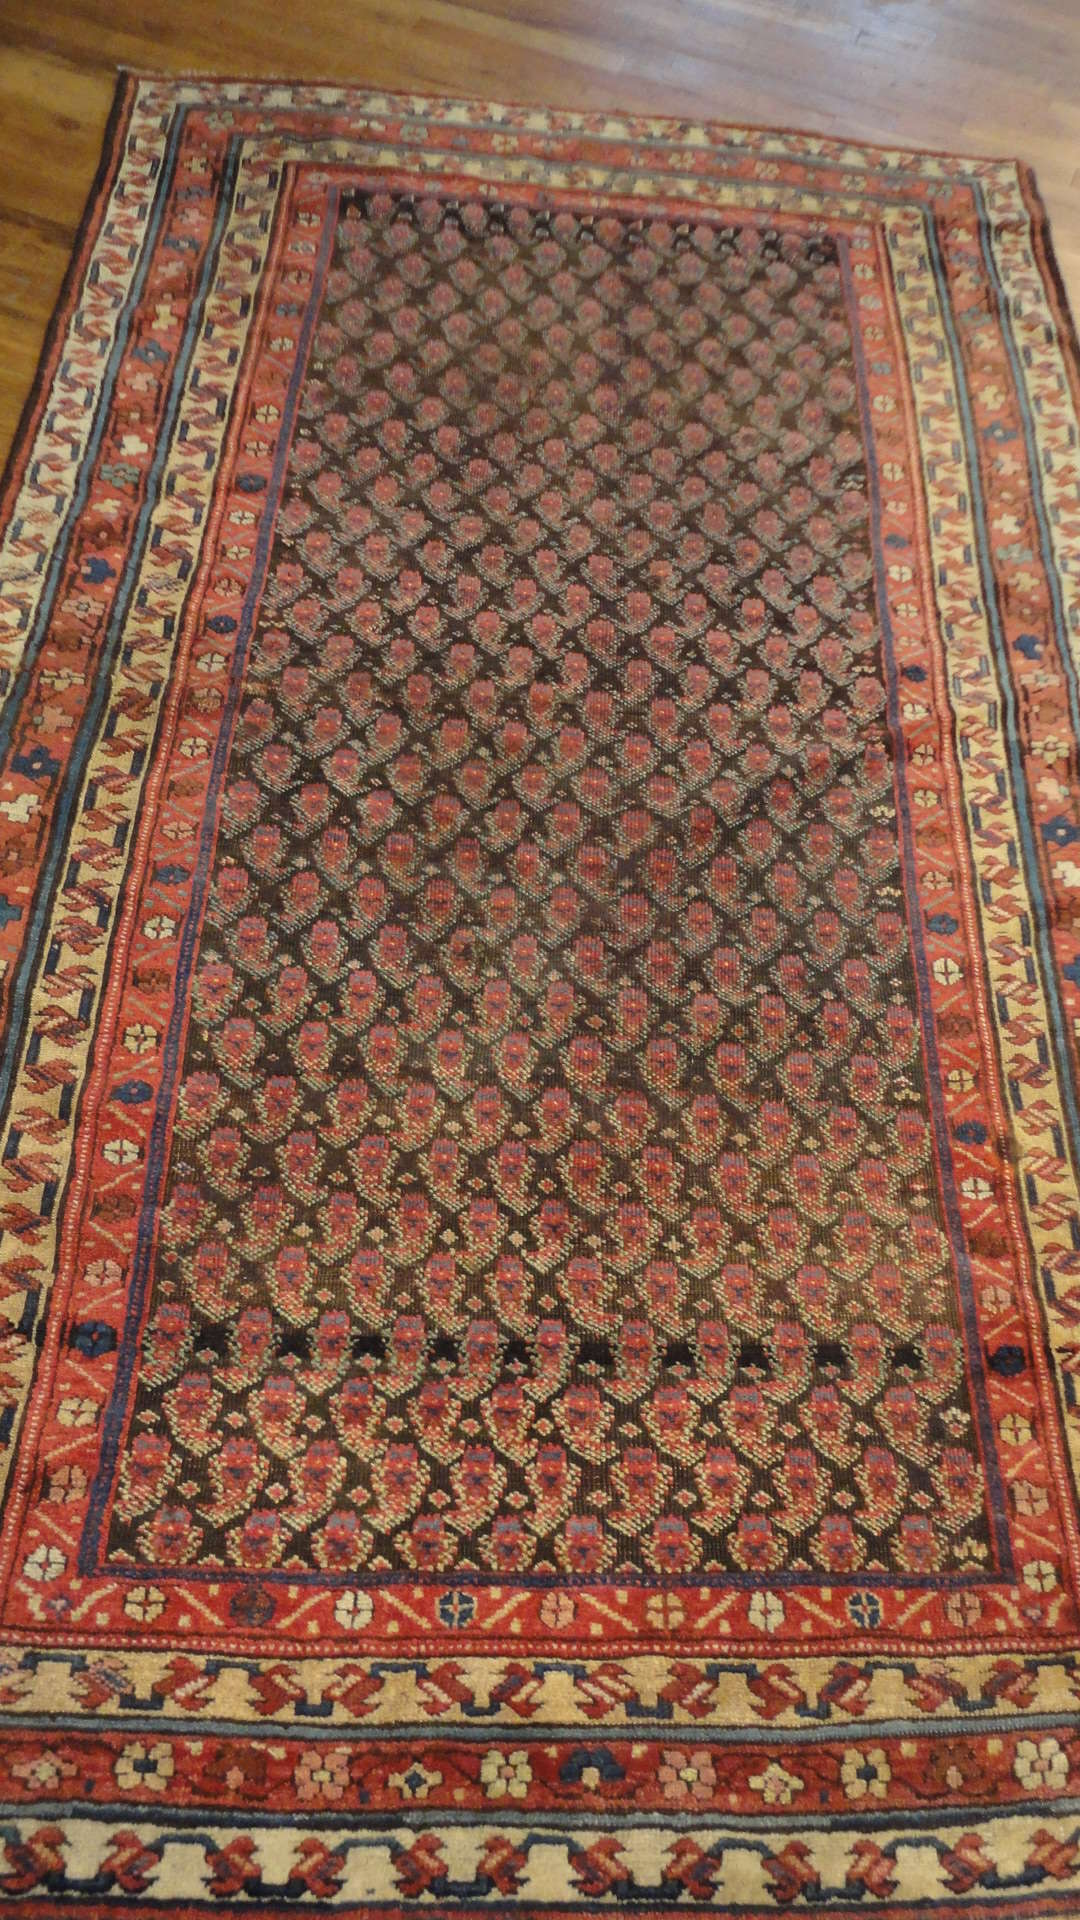 Kurd Rug | Northwest Persia | Handmade | Antique Circa 1900